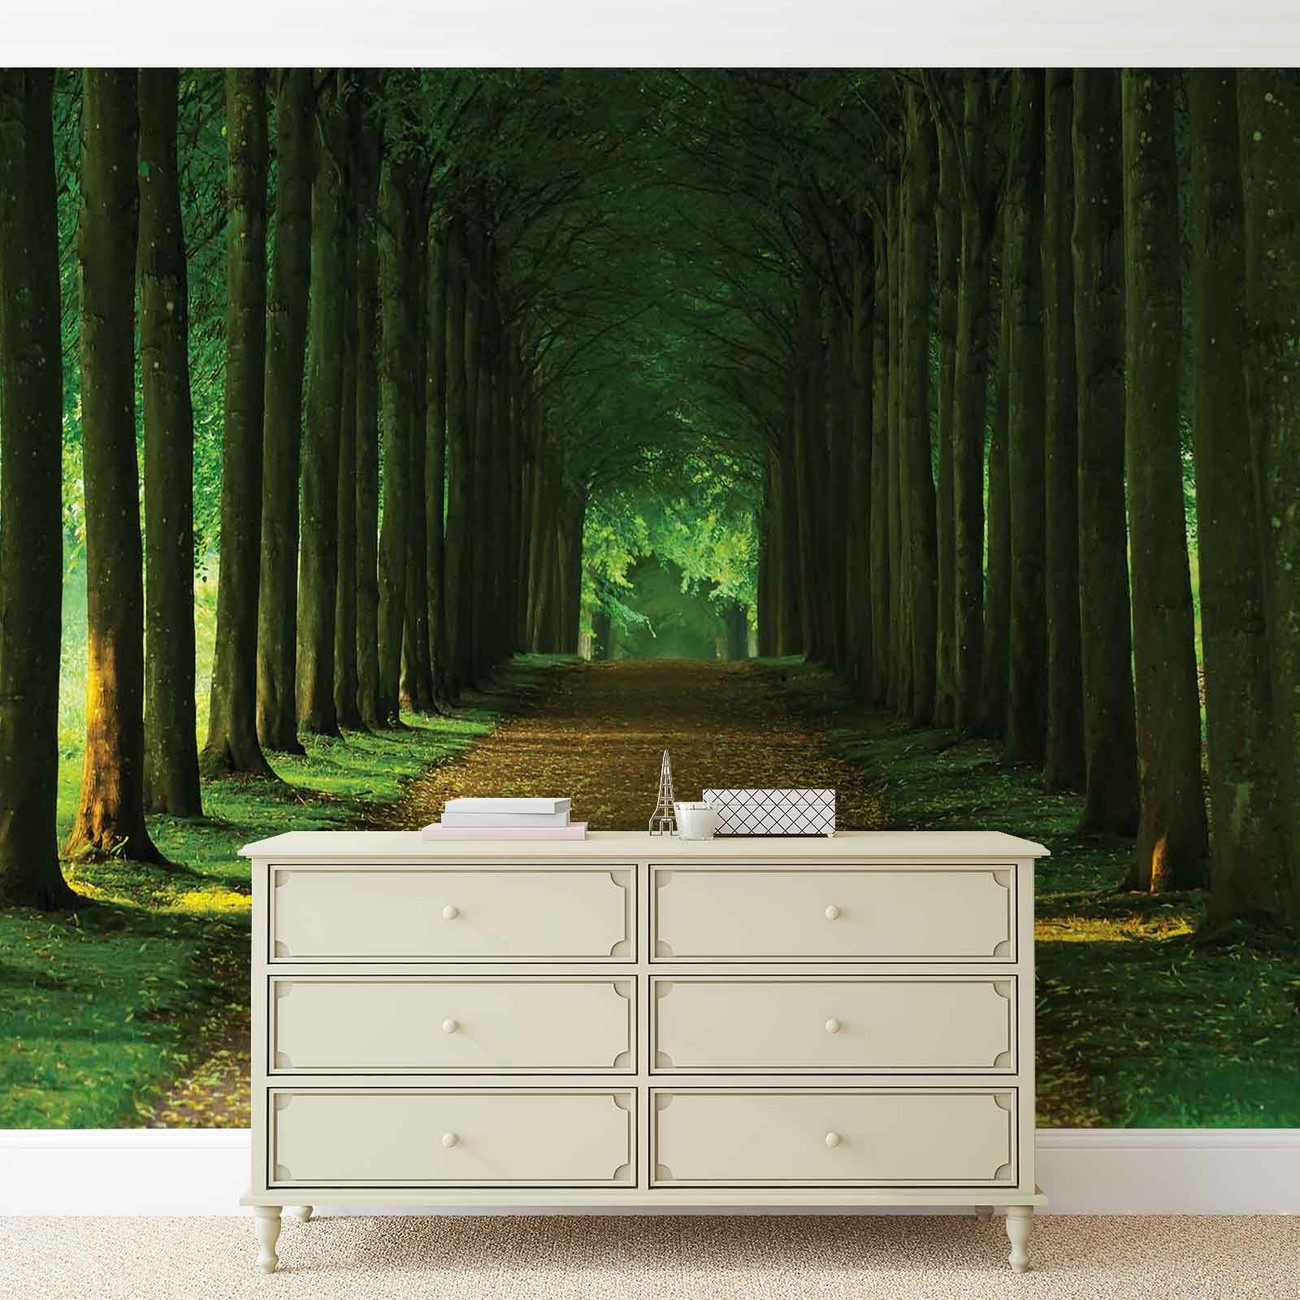 fototapete tapete weg b ume wald natur bei europosters. Black Bedroom Furniture Sets. Home Design Ideas